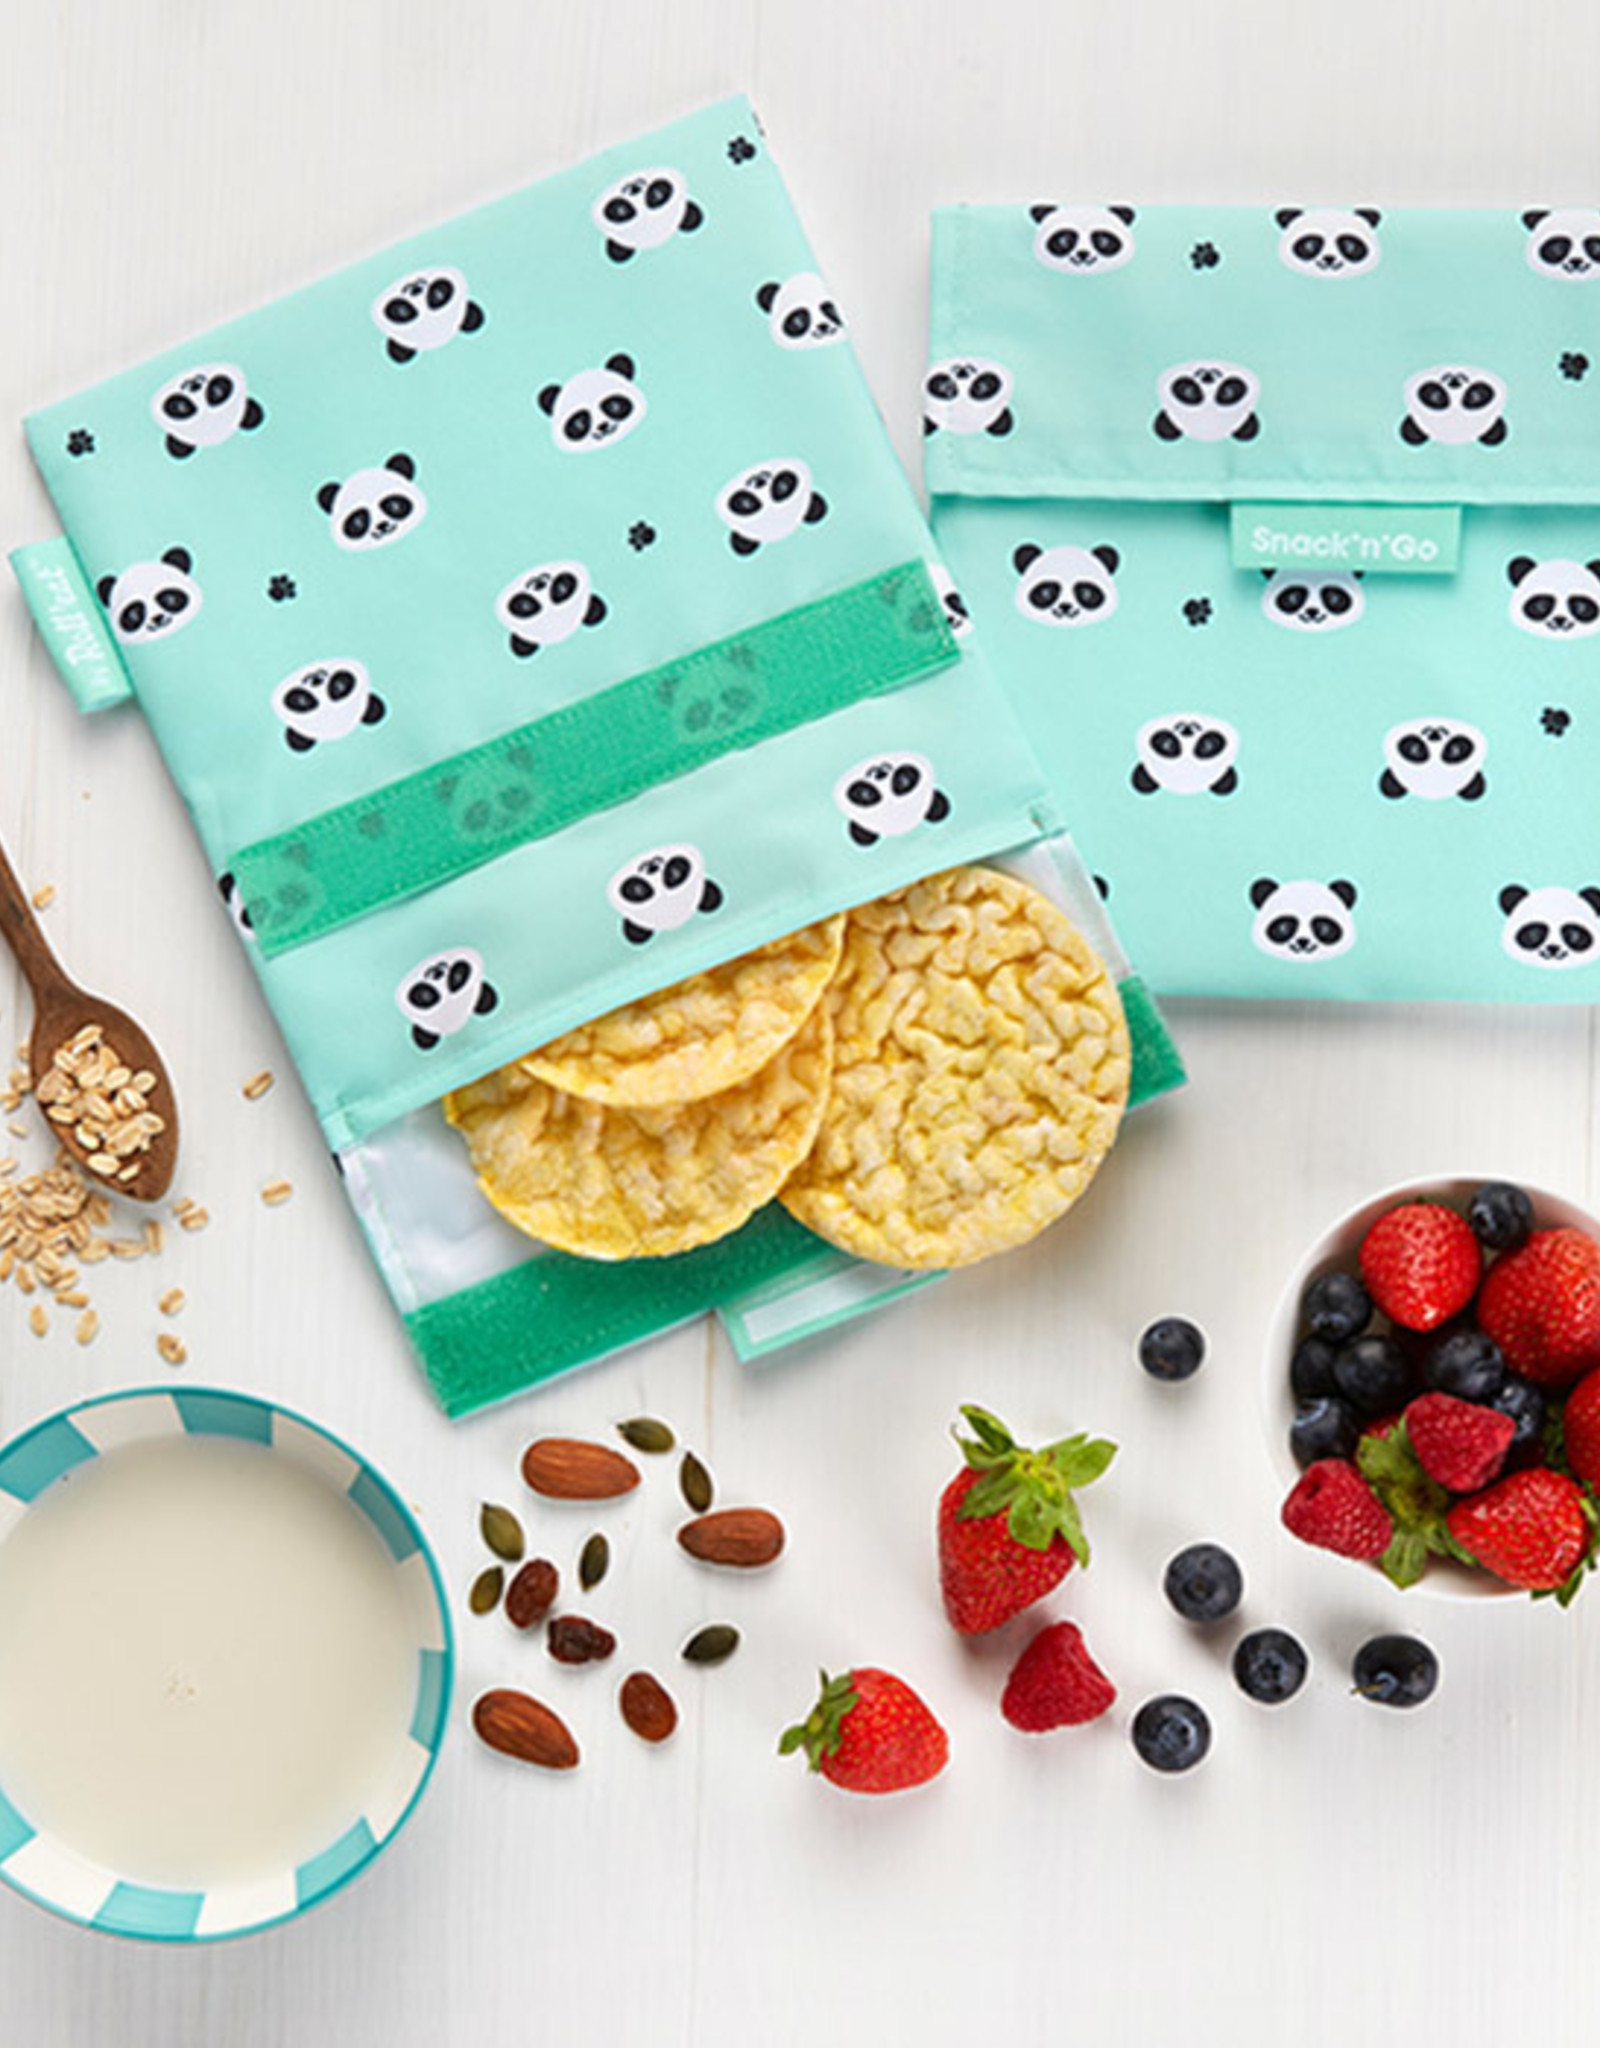 Roll'Eat Snack'n'Go kids - Animal panda